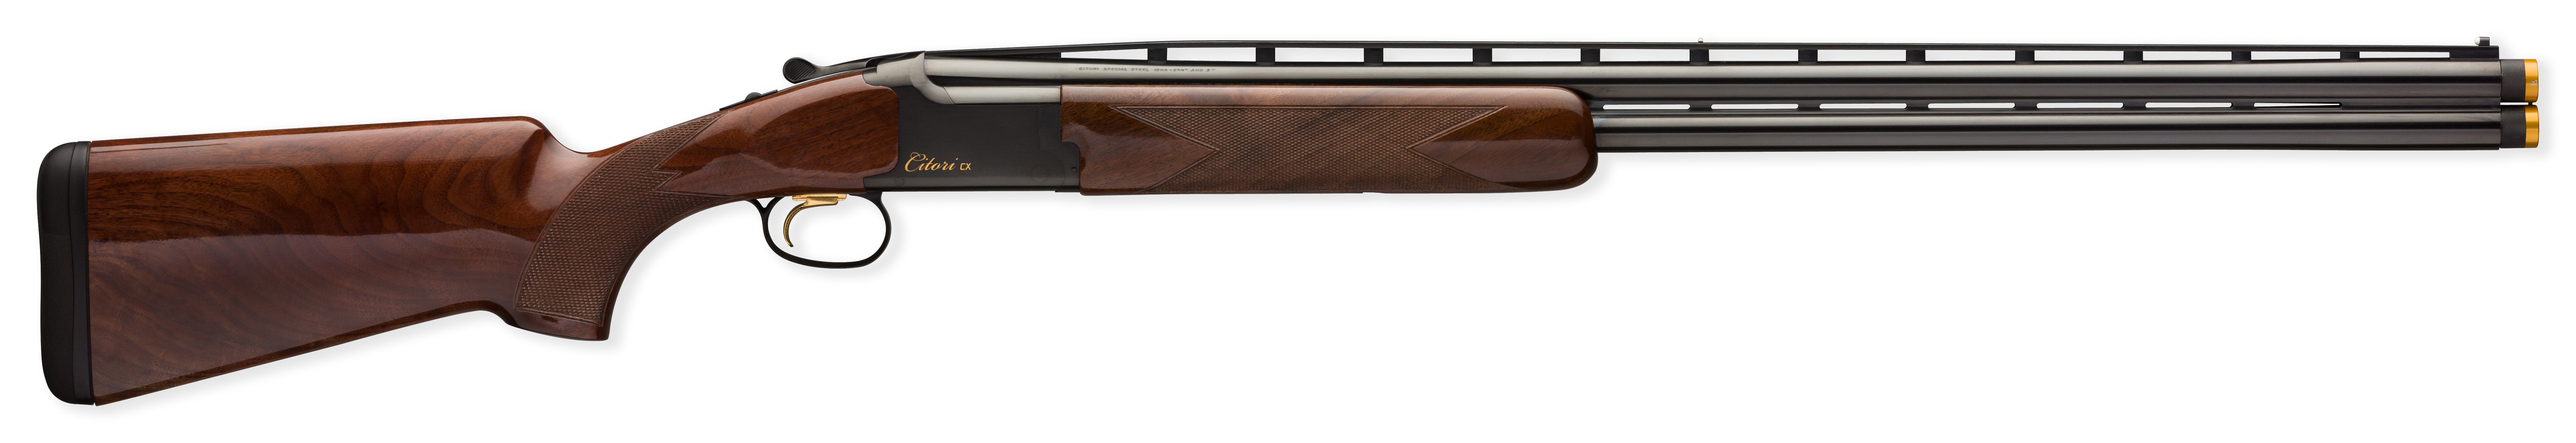 Browning Citori CX Over/Under 3'' 12 Gauge 30'' Blued Steel - American Walnut